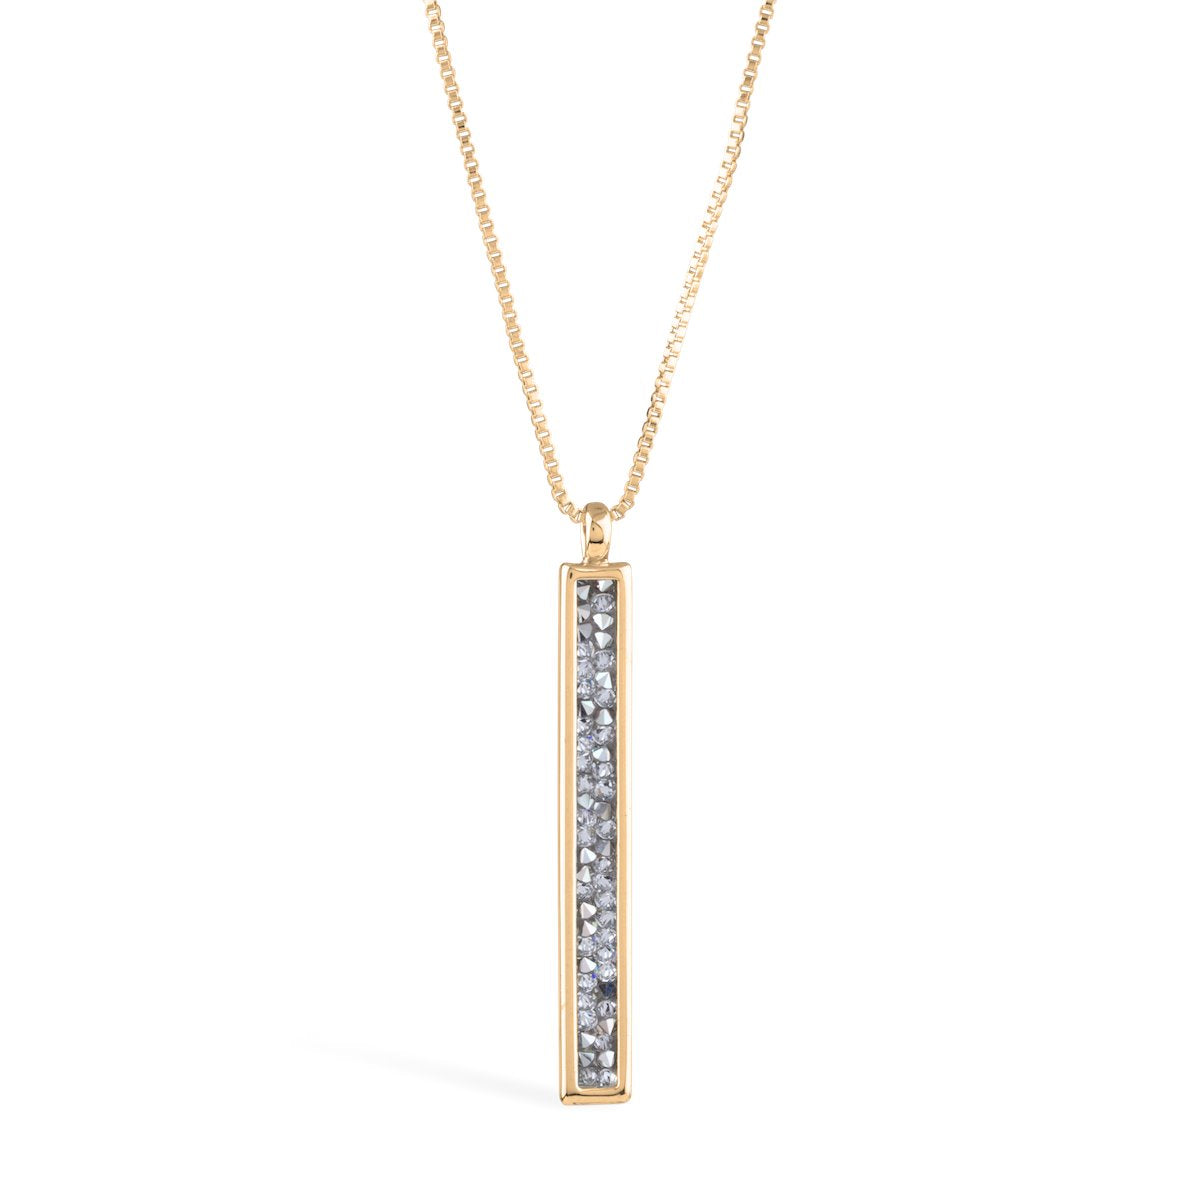 Pyxis Necklace forevercrystals Gold